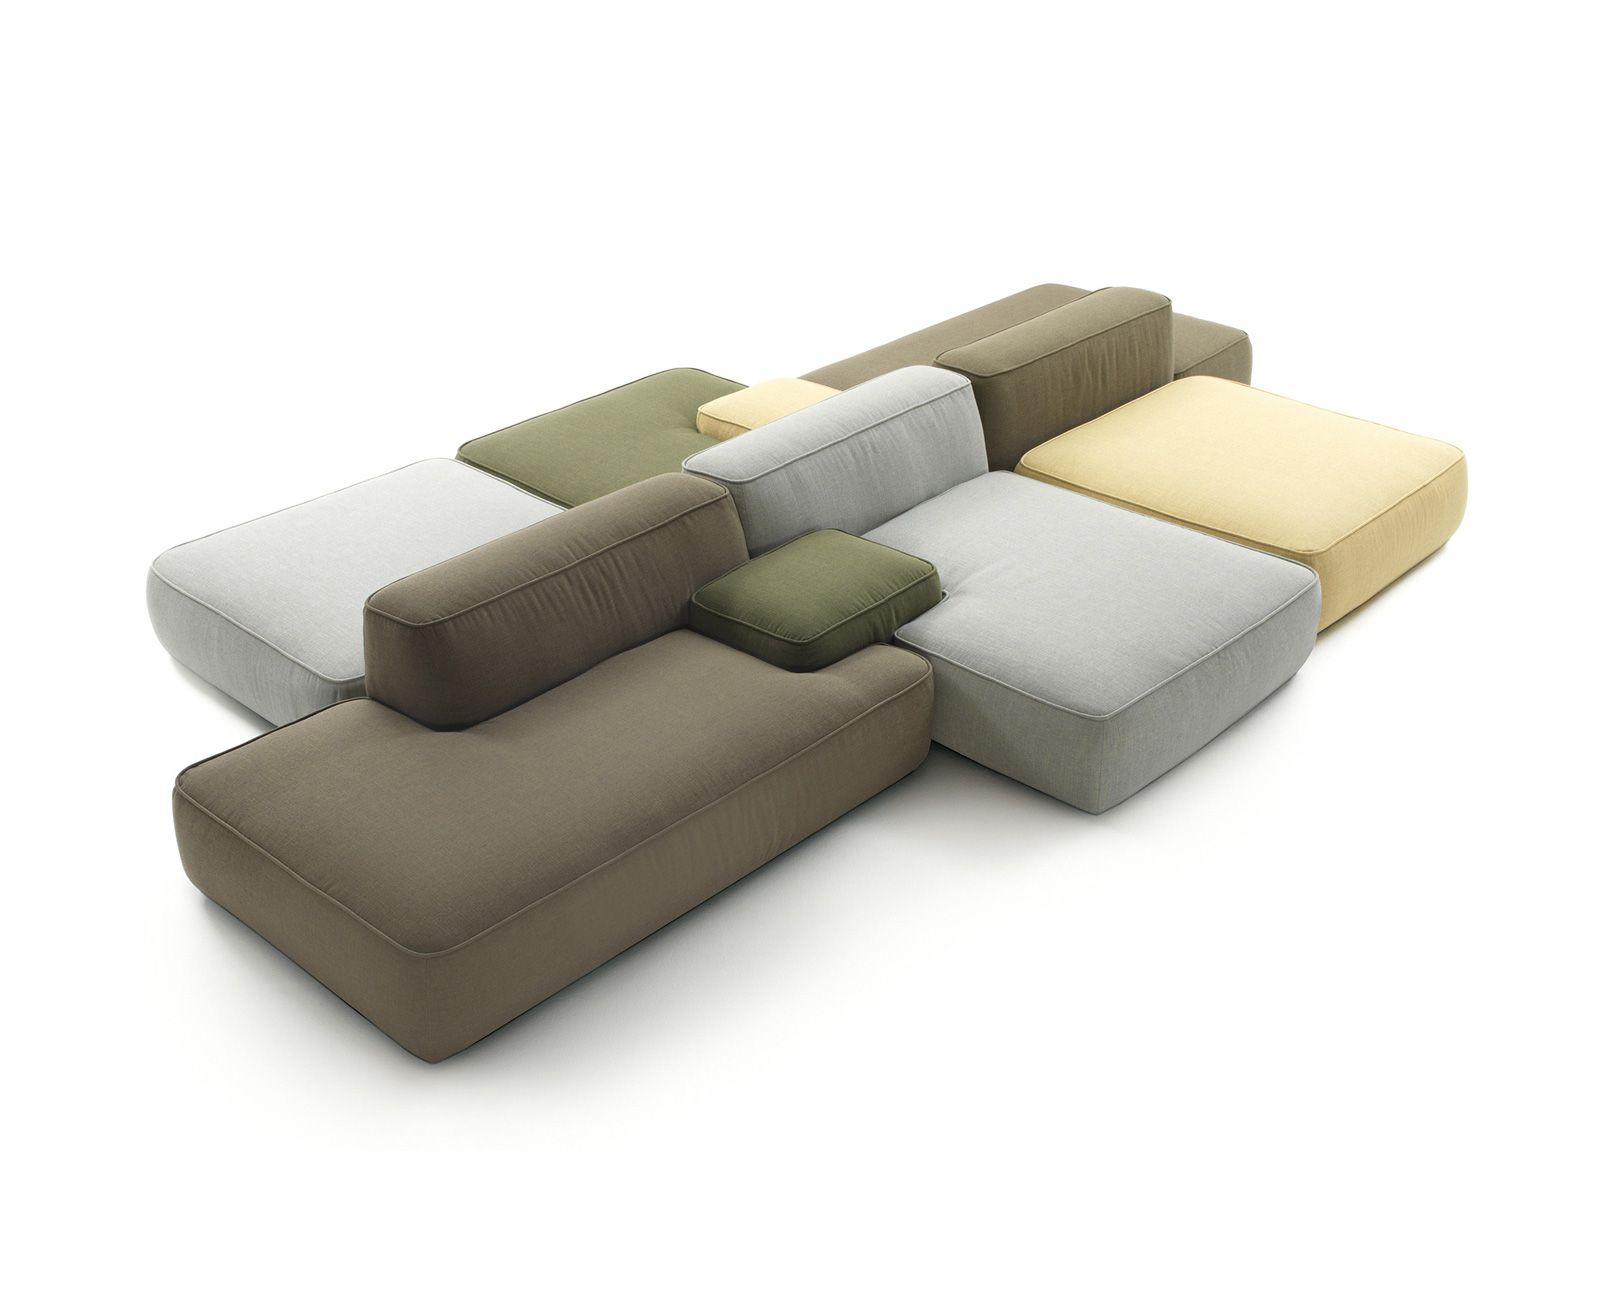 http://www.forza.co.uk/products/furniture/brand/lema/product/cloud ...